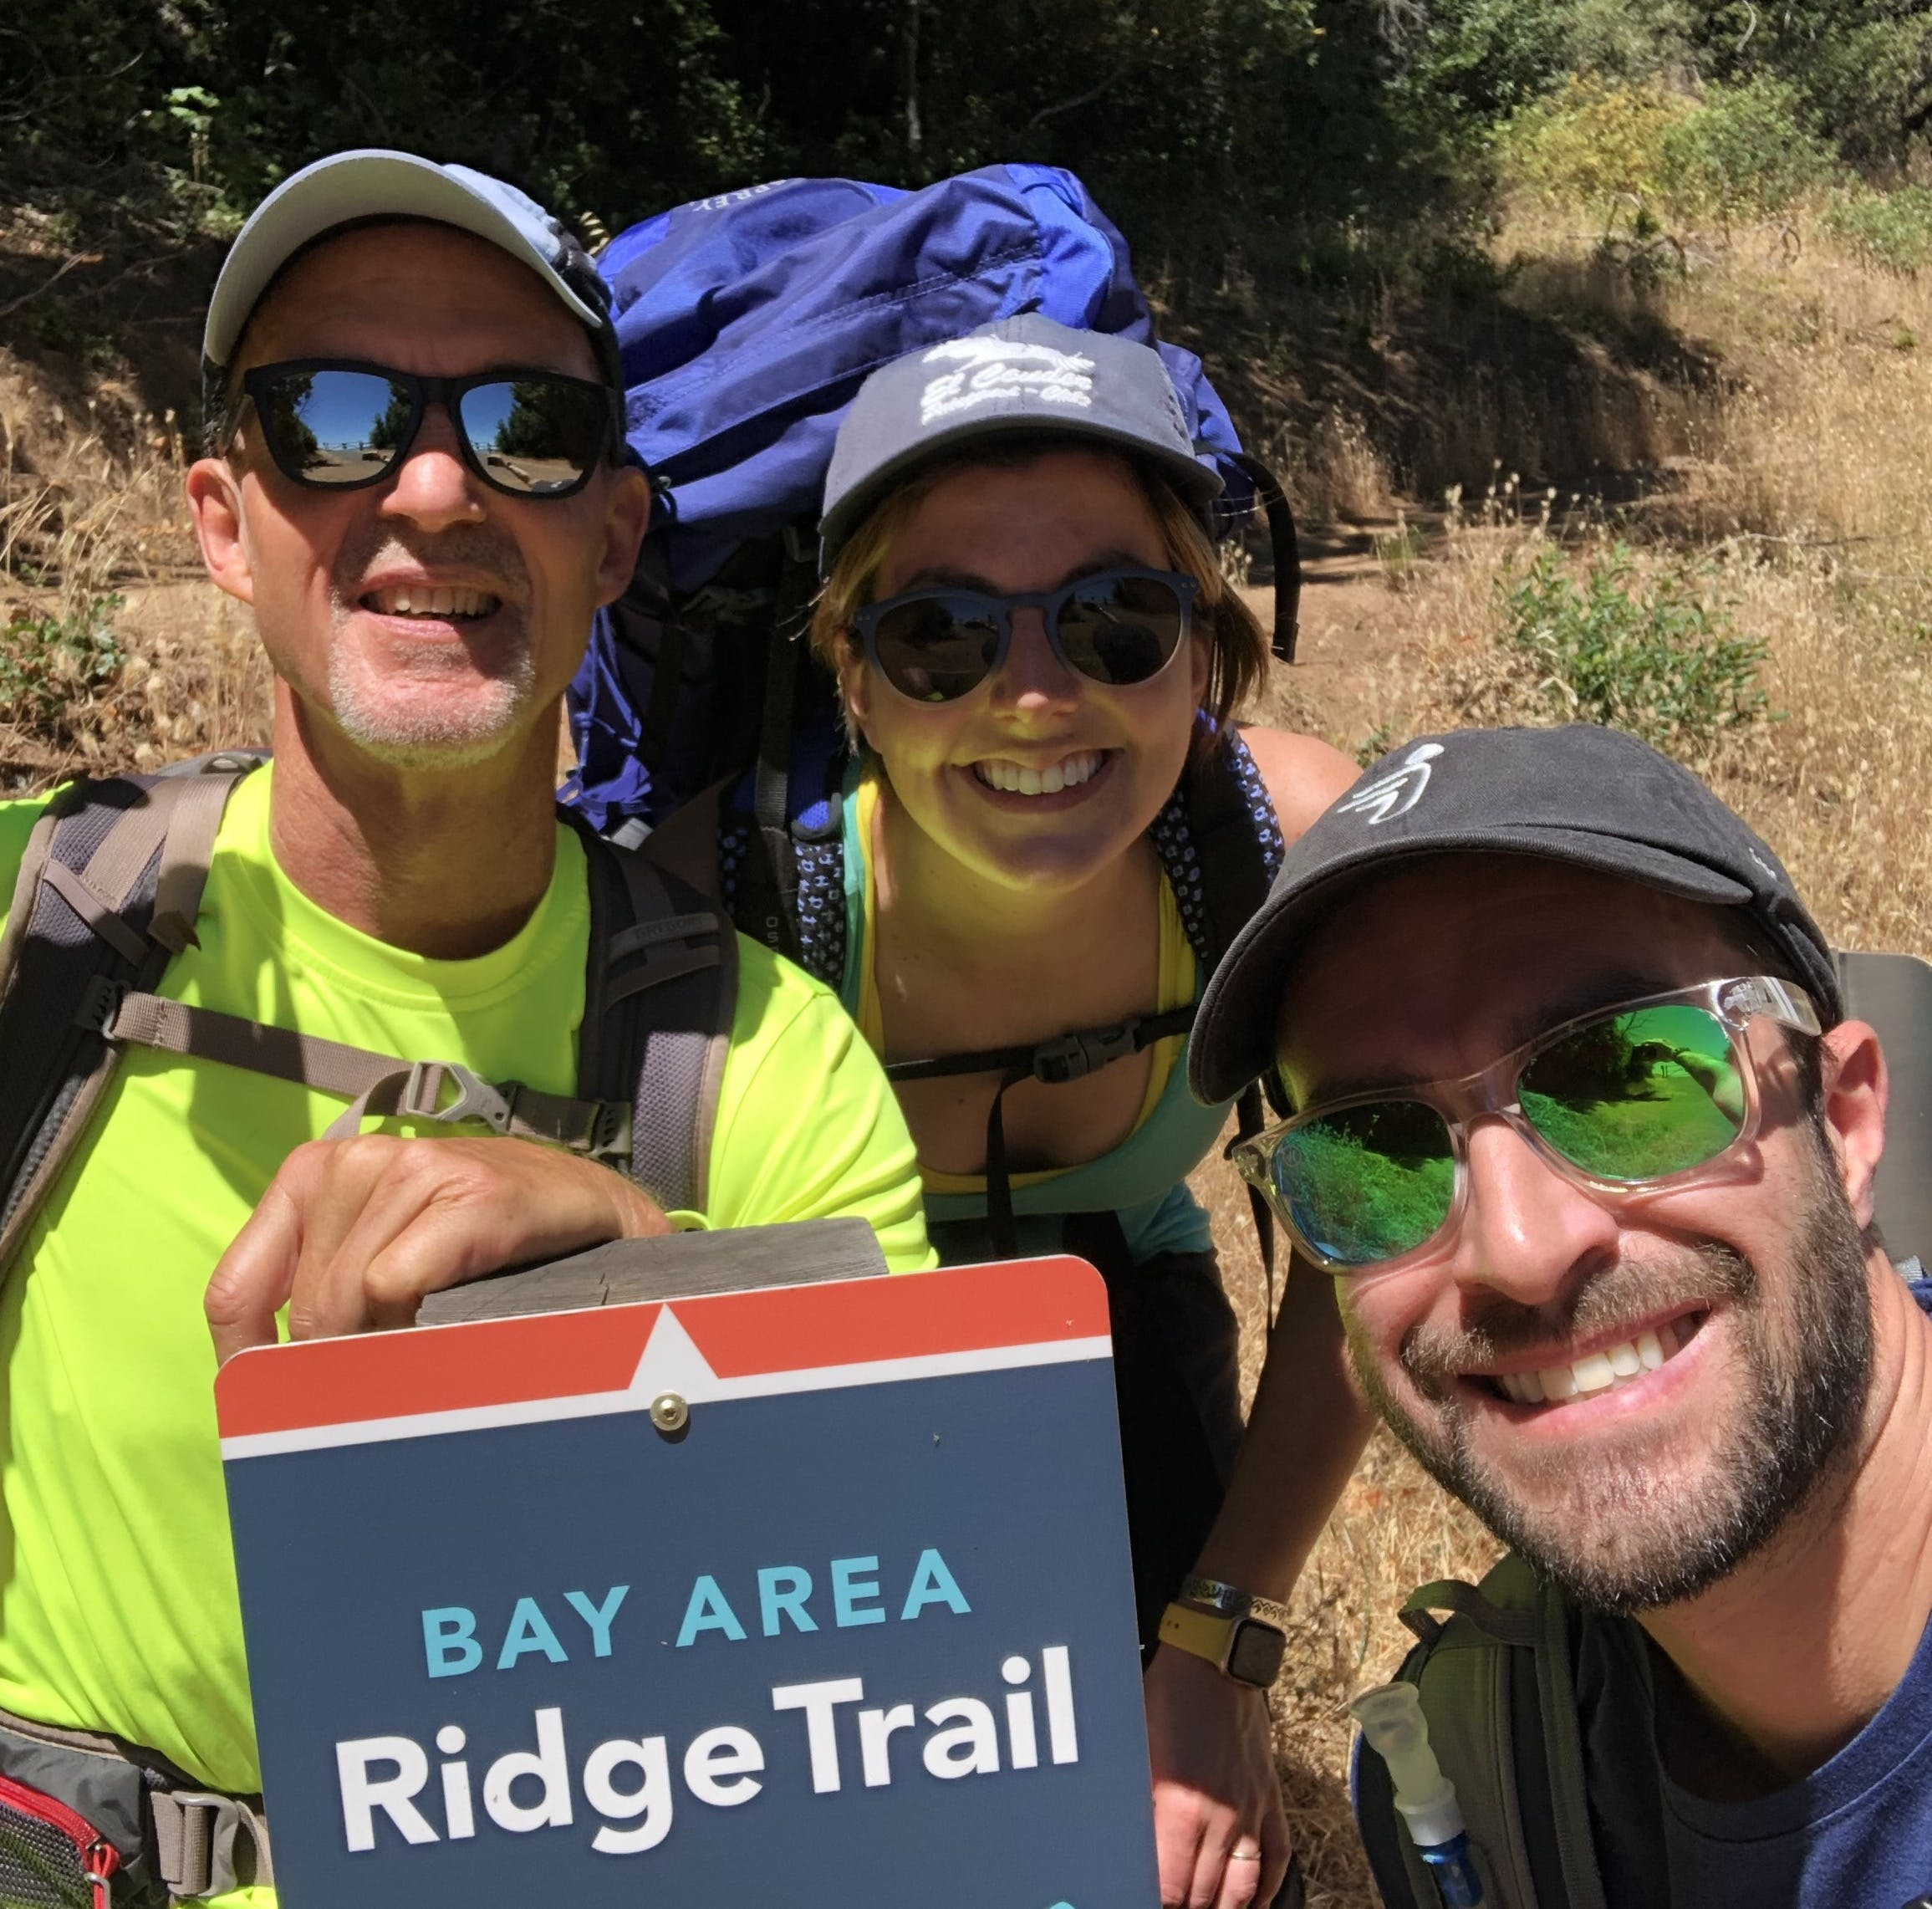 Three hikers smiling at the camera in front of the Bay Area Ridge Trail